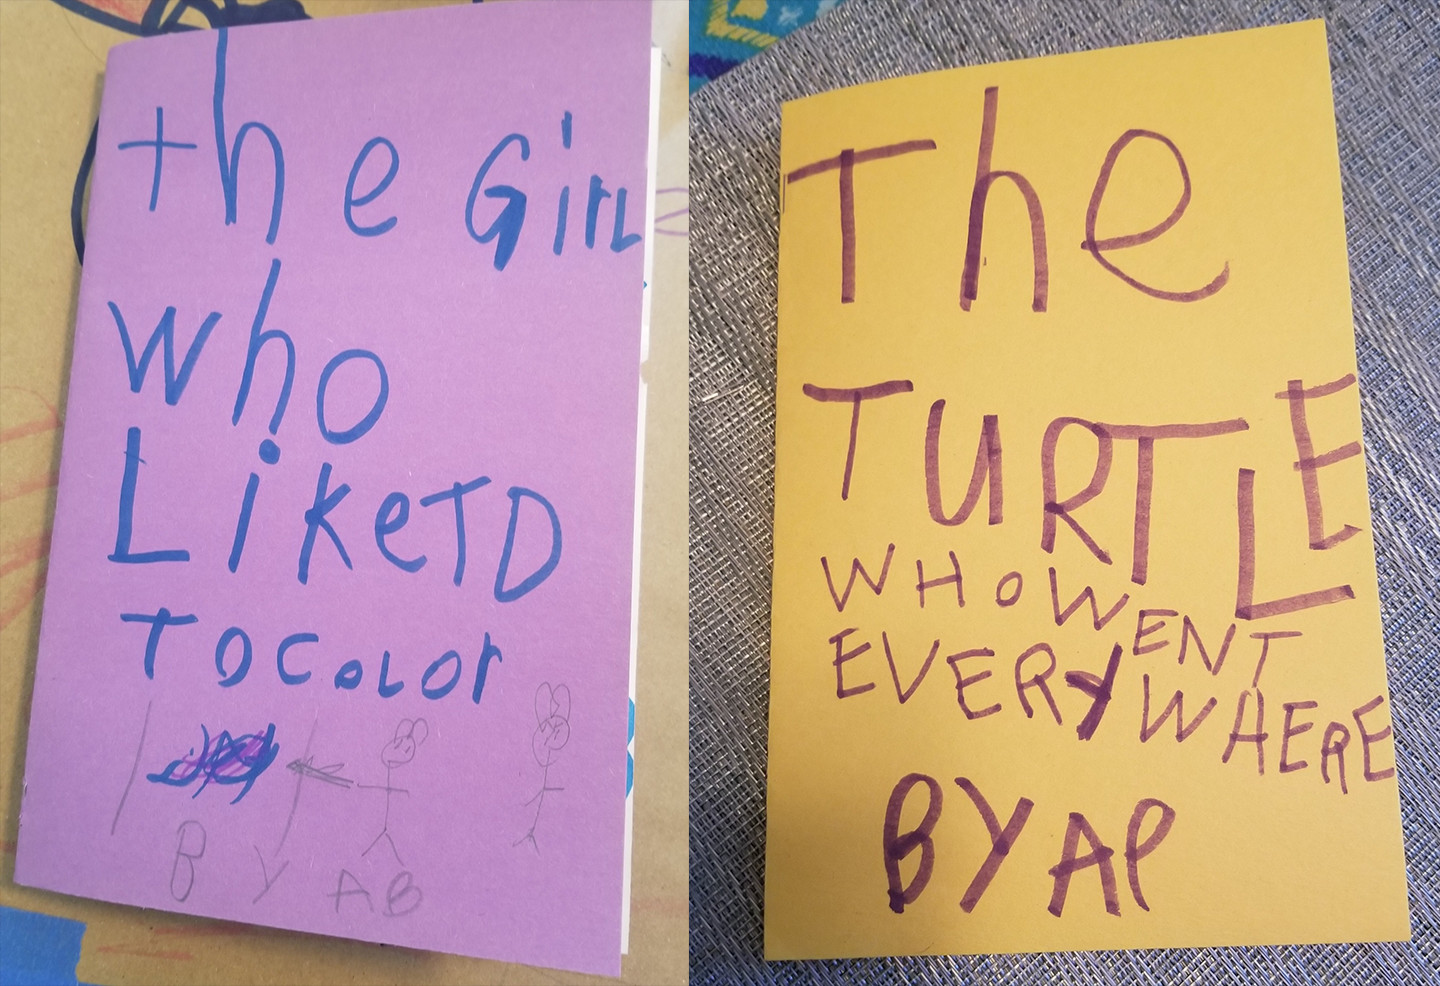 book covers on purple and yellow construction paper, handwritten by a child,